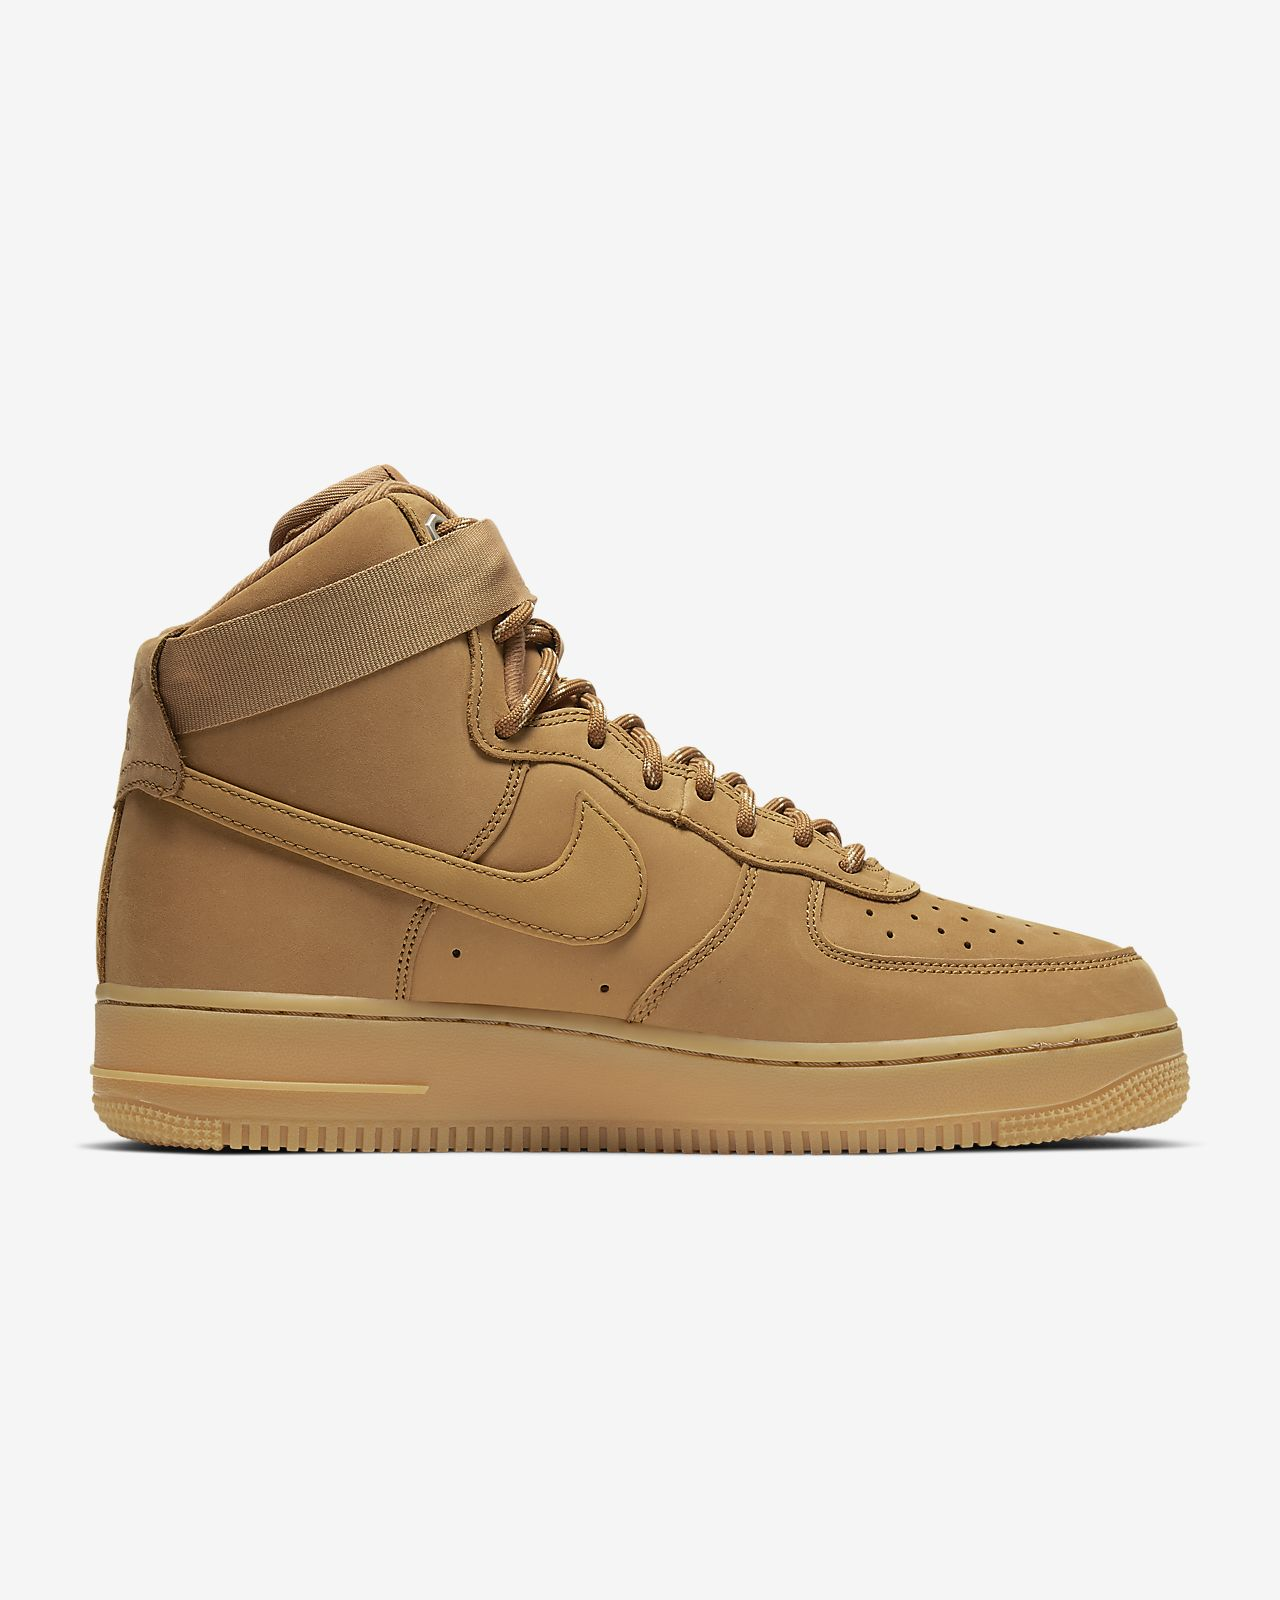 2019 Nike Air Force 1 '07 3 High WhiteUniversity Gold AT4141 101